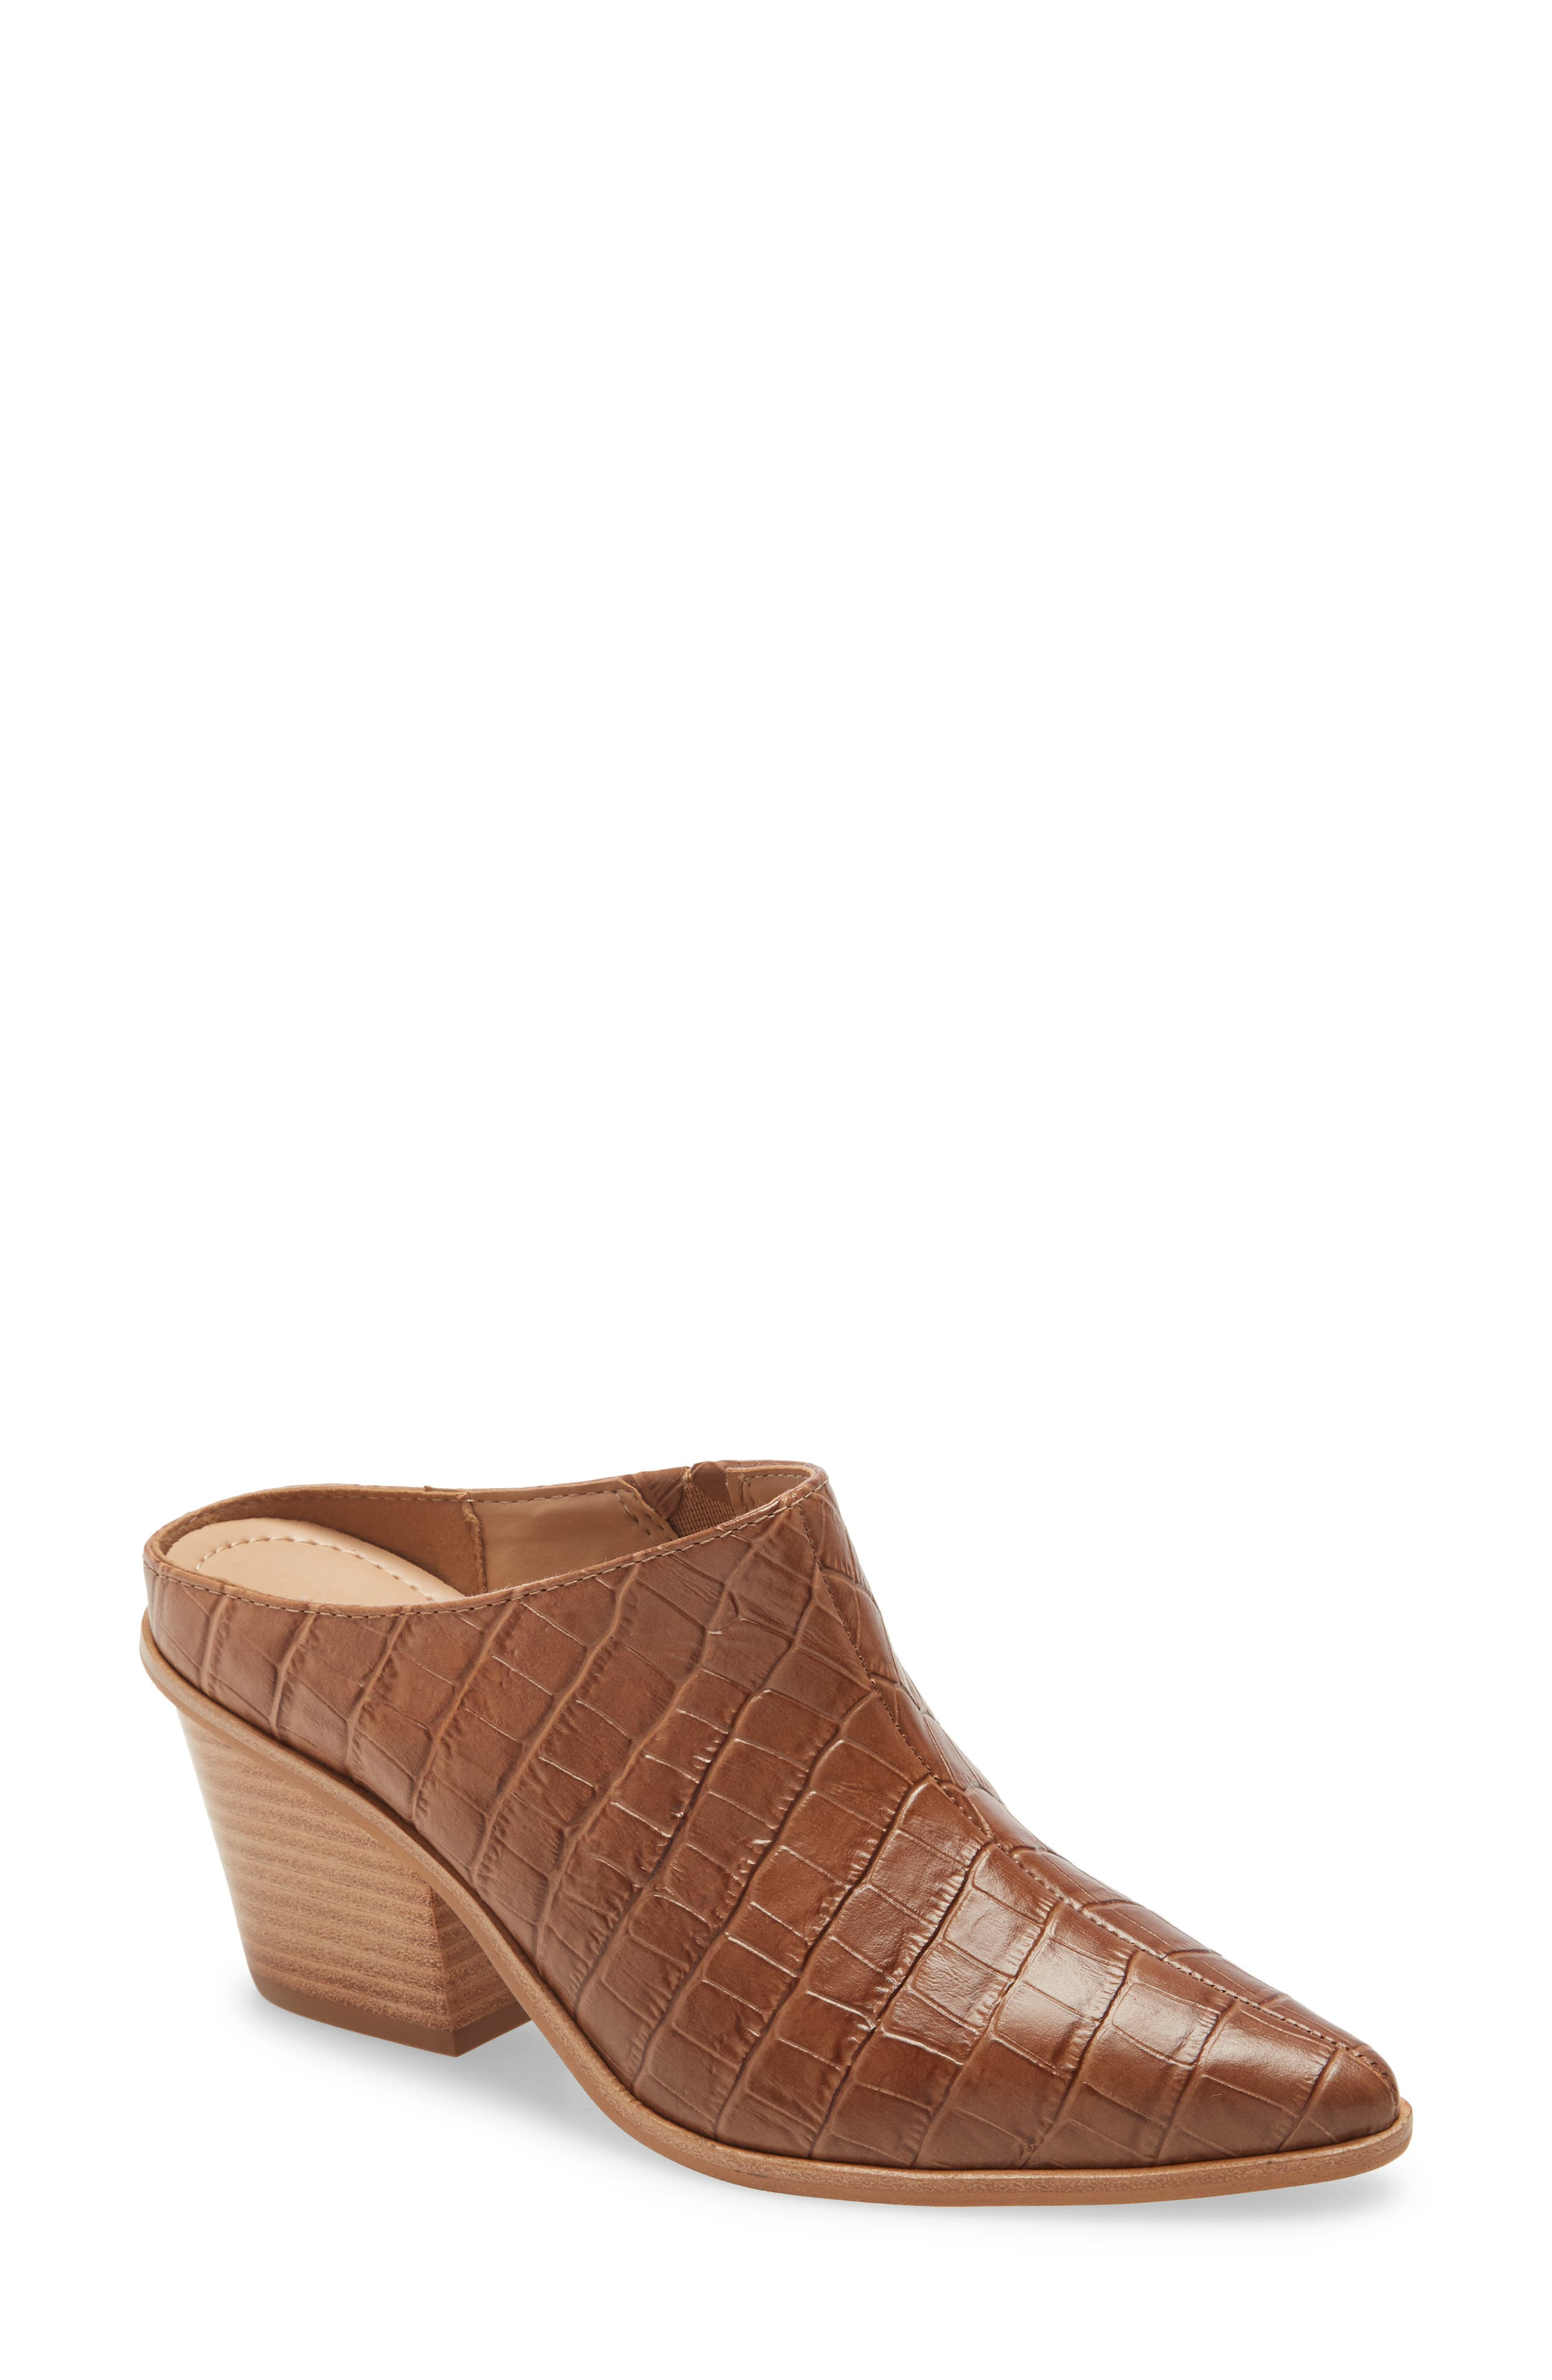 This rustic mule is styled with a seam-centered pointy toe, a sturdy stacked heel and a bit of goring for flexibility for putting it on and taking it off. Style Name: Kaanas Brunello Mule (Women). Style Number: 6102653. Available in stores.